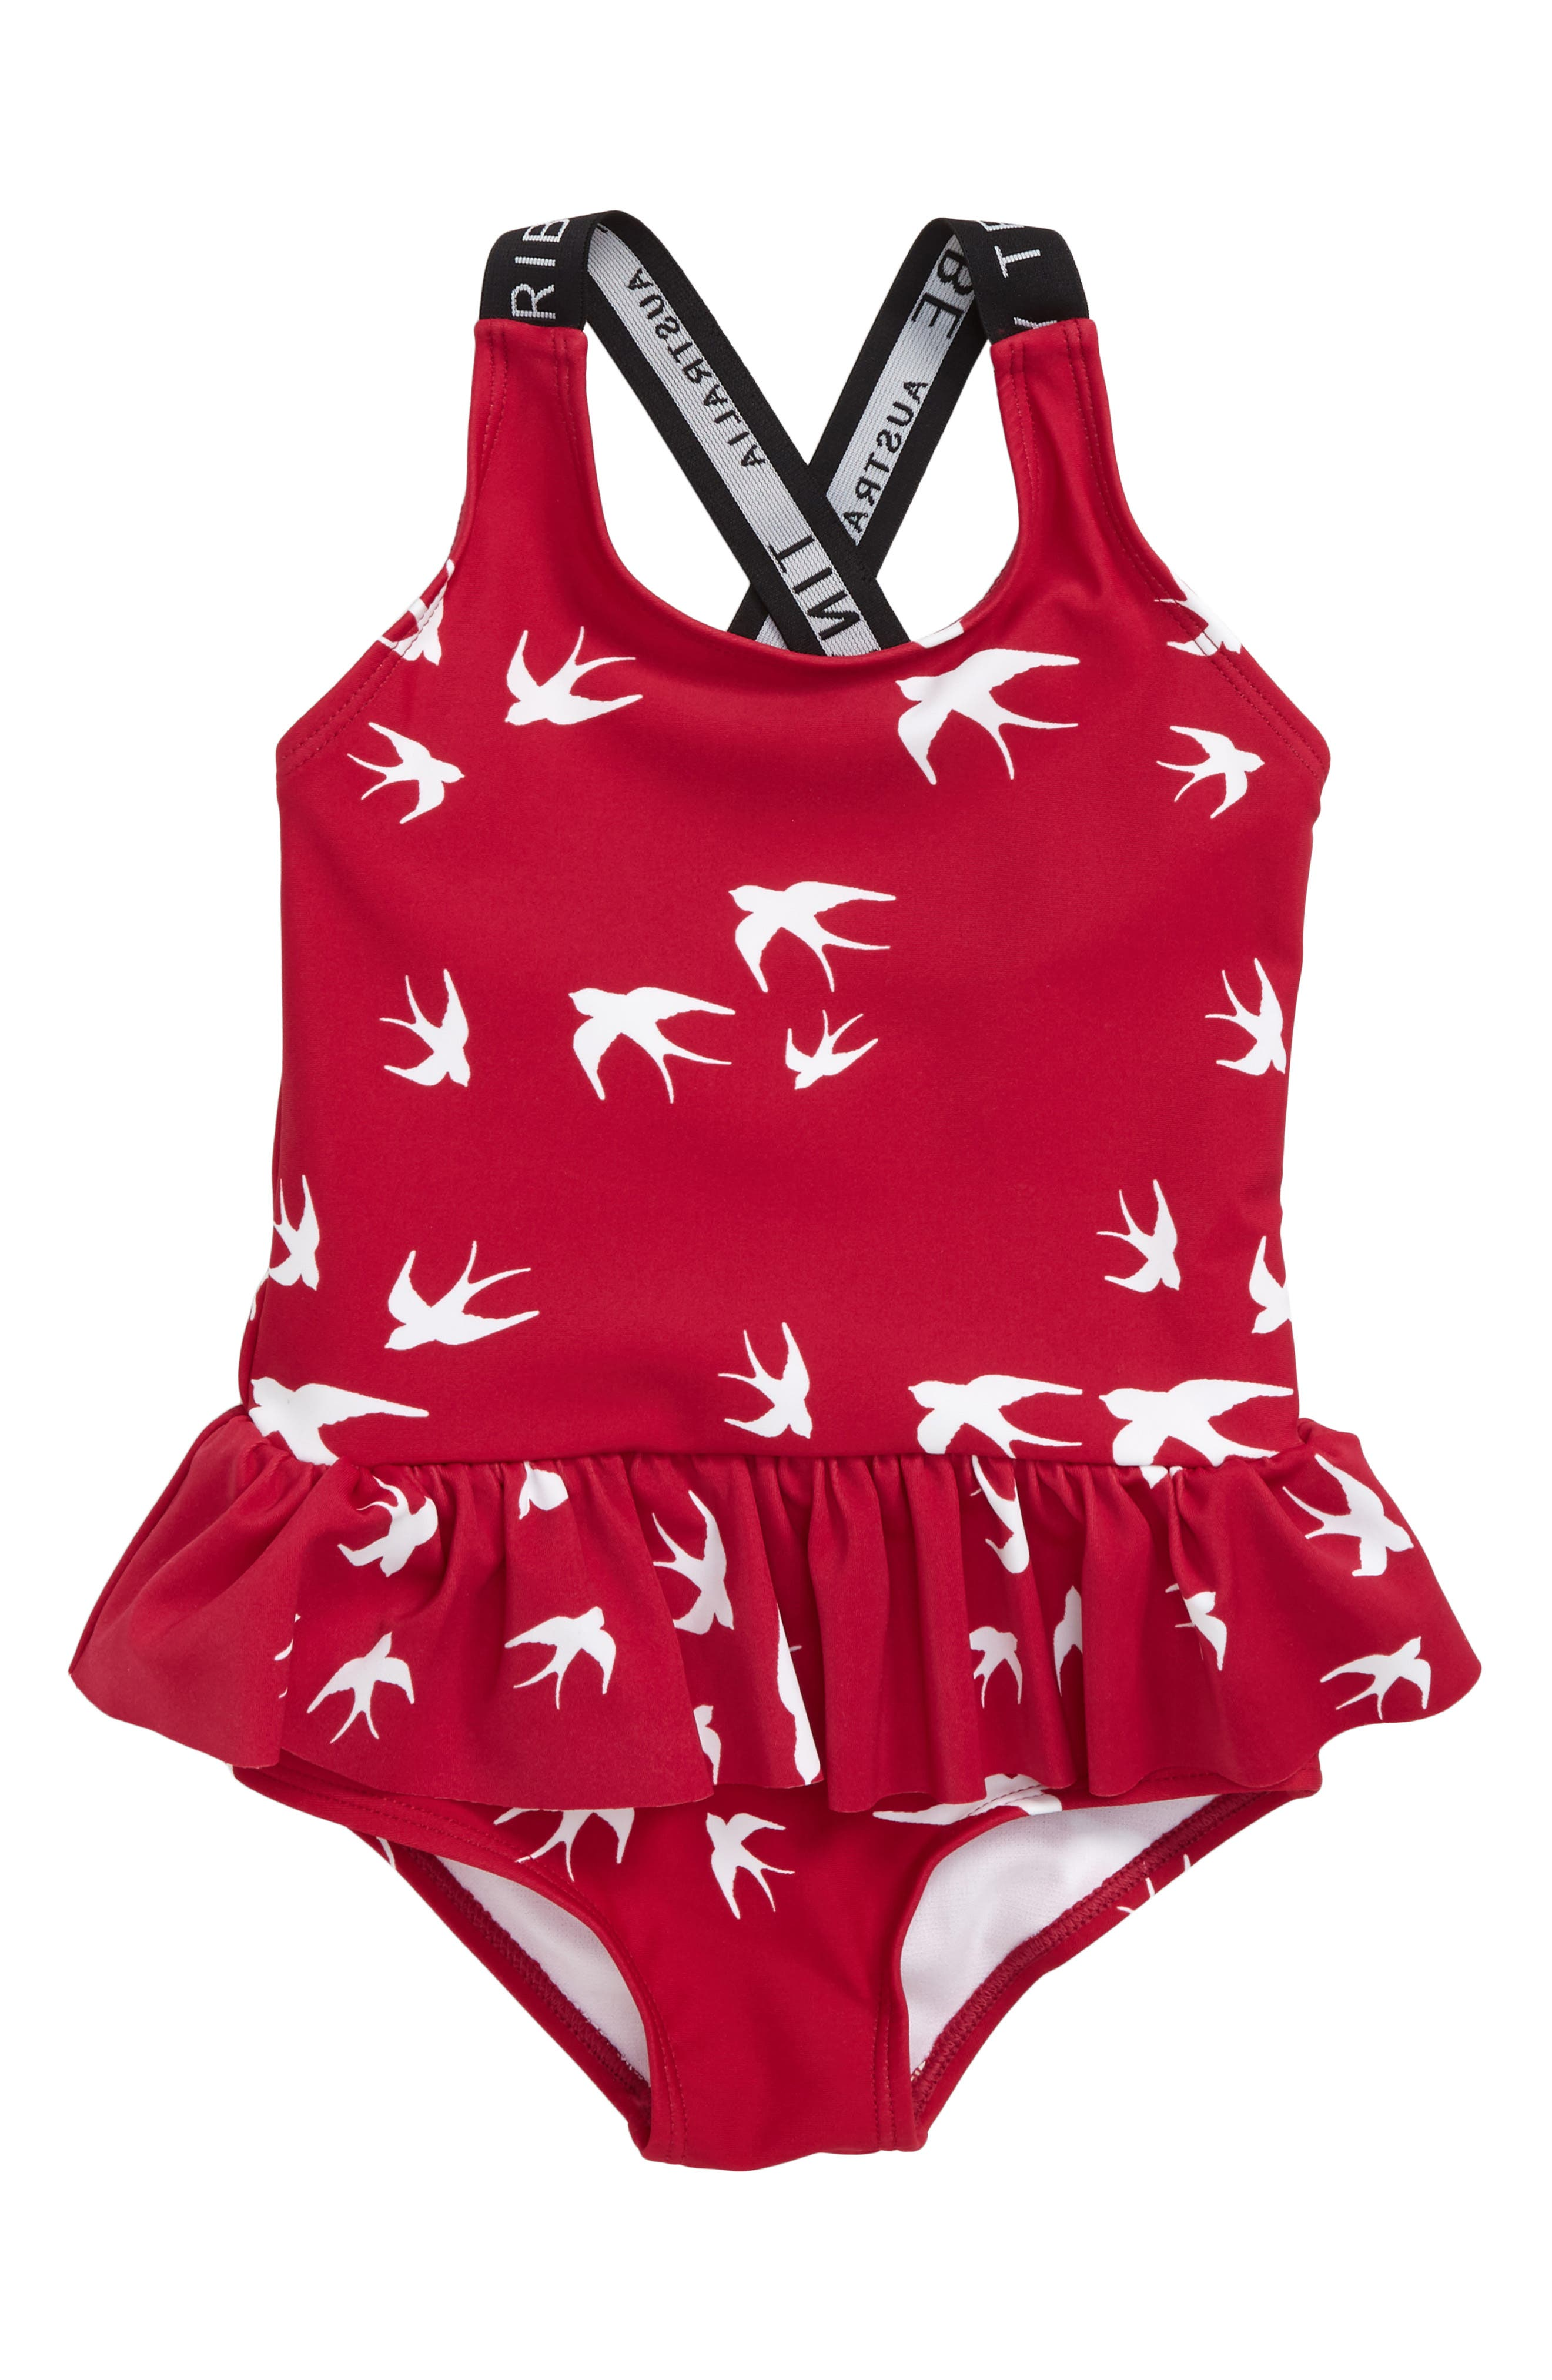 f681a9aeae286 Girls' One-Piece Swimsuits | Nordstrom